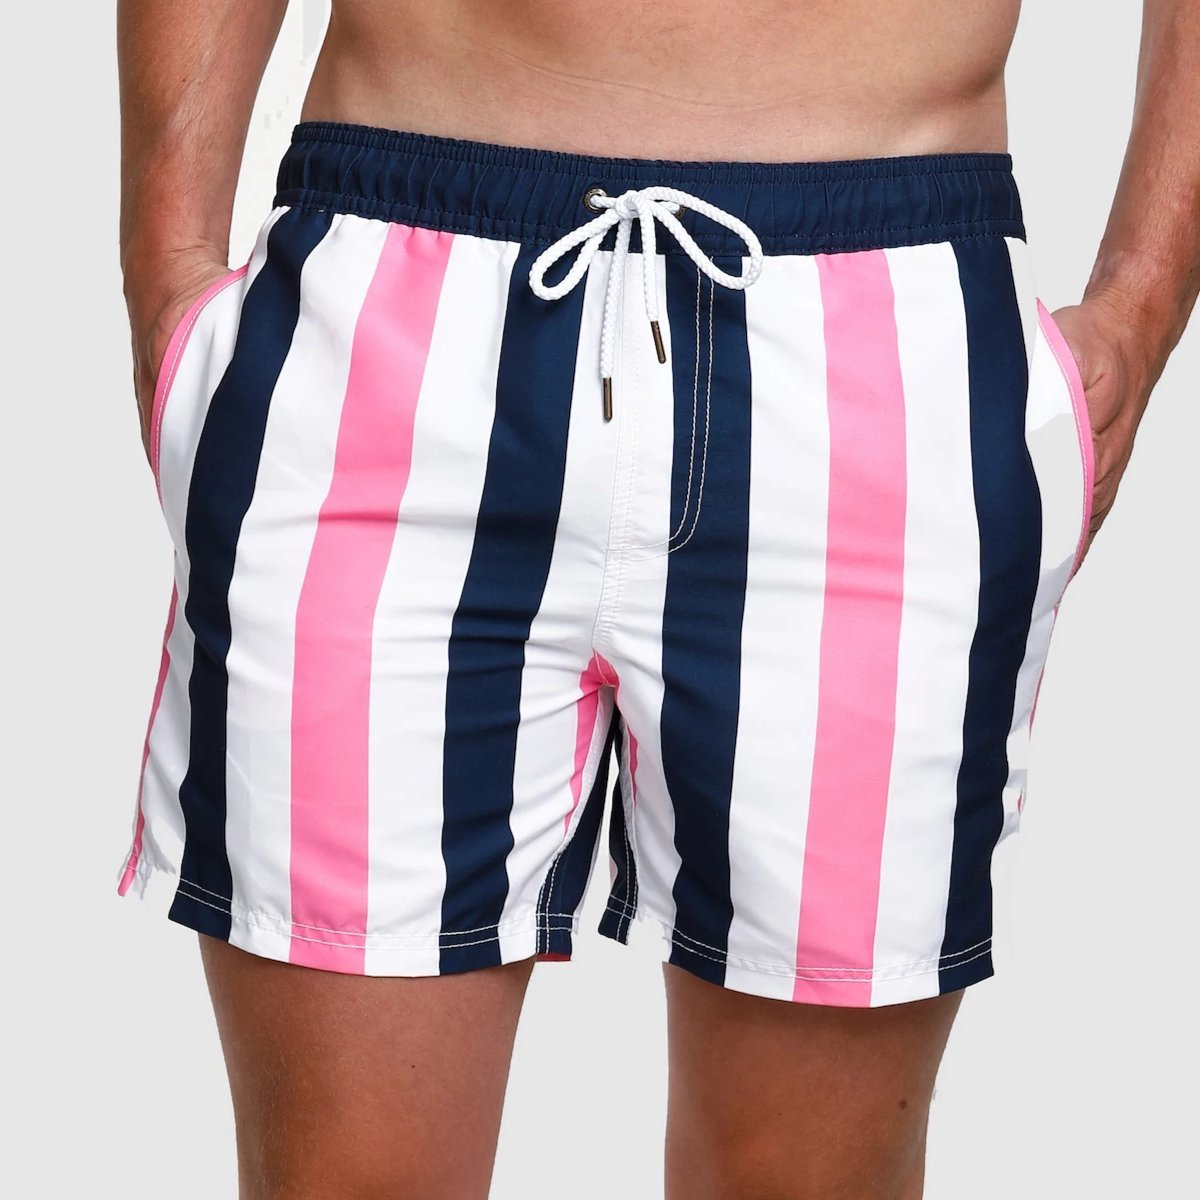 Ortc Swim Shorts - Coogee Shorts